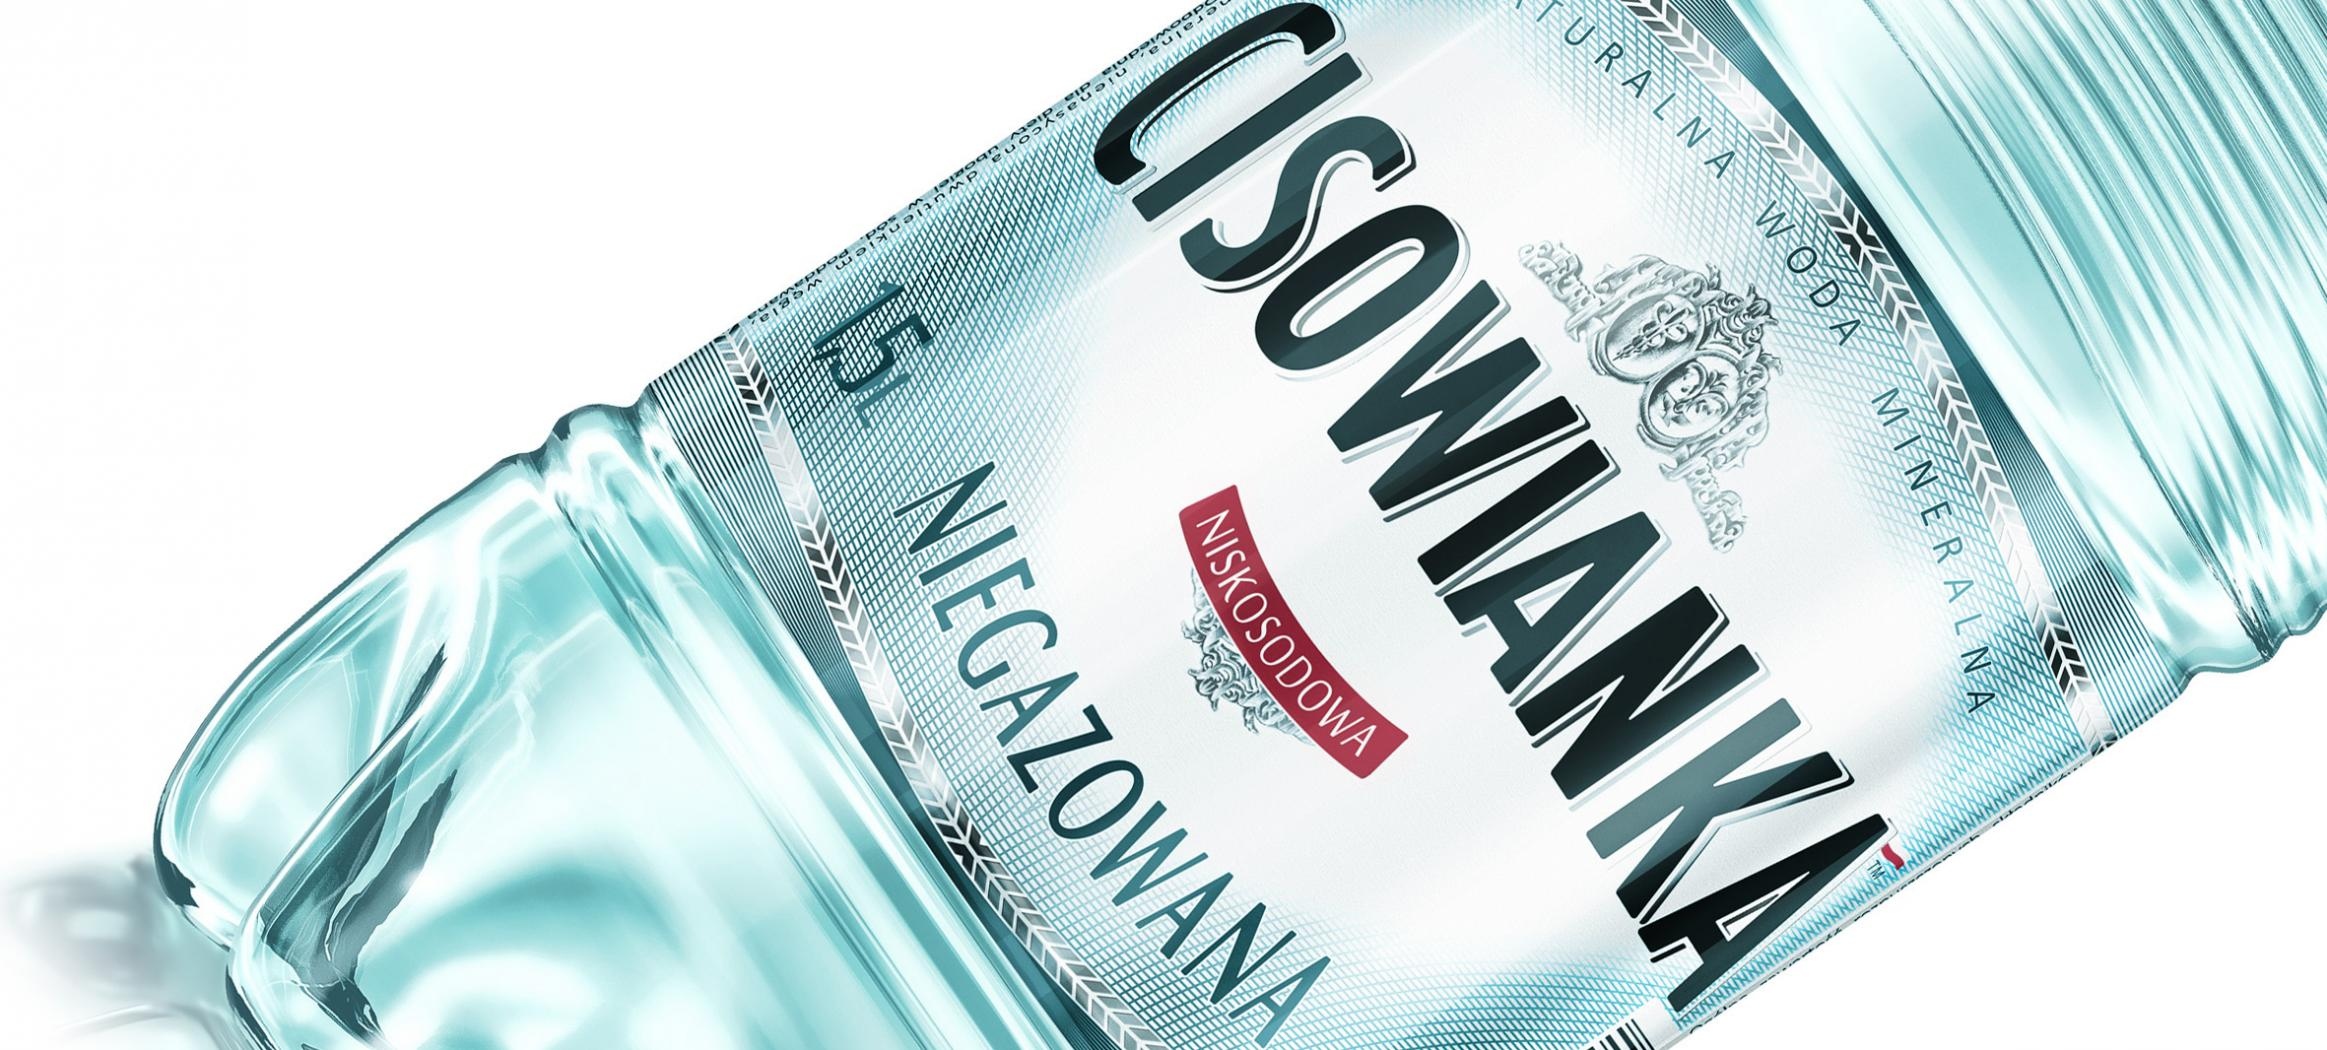 Cisowianka Superbrand!